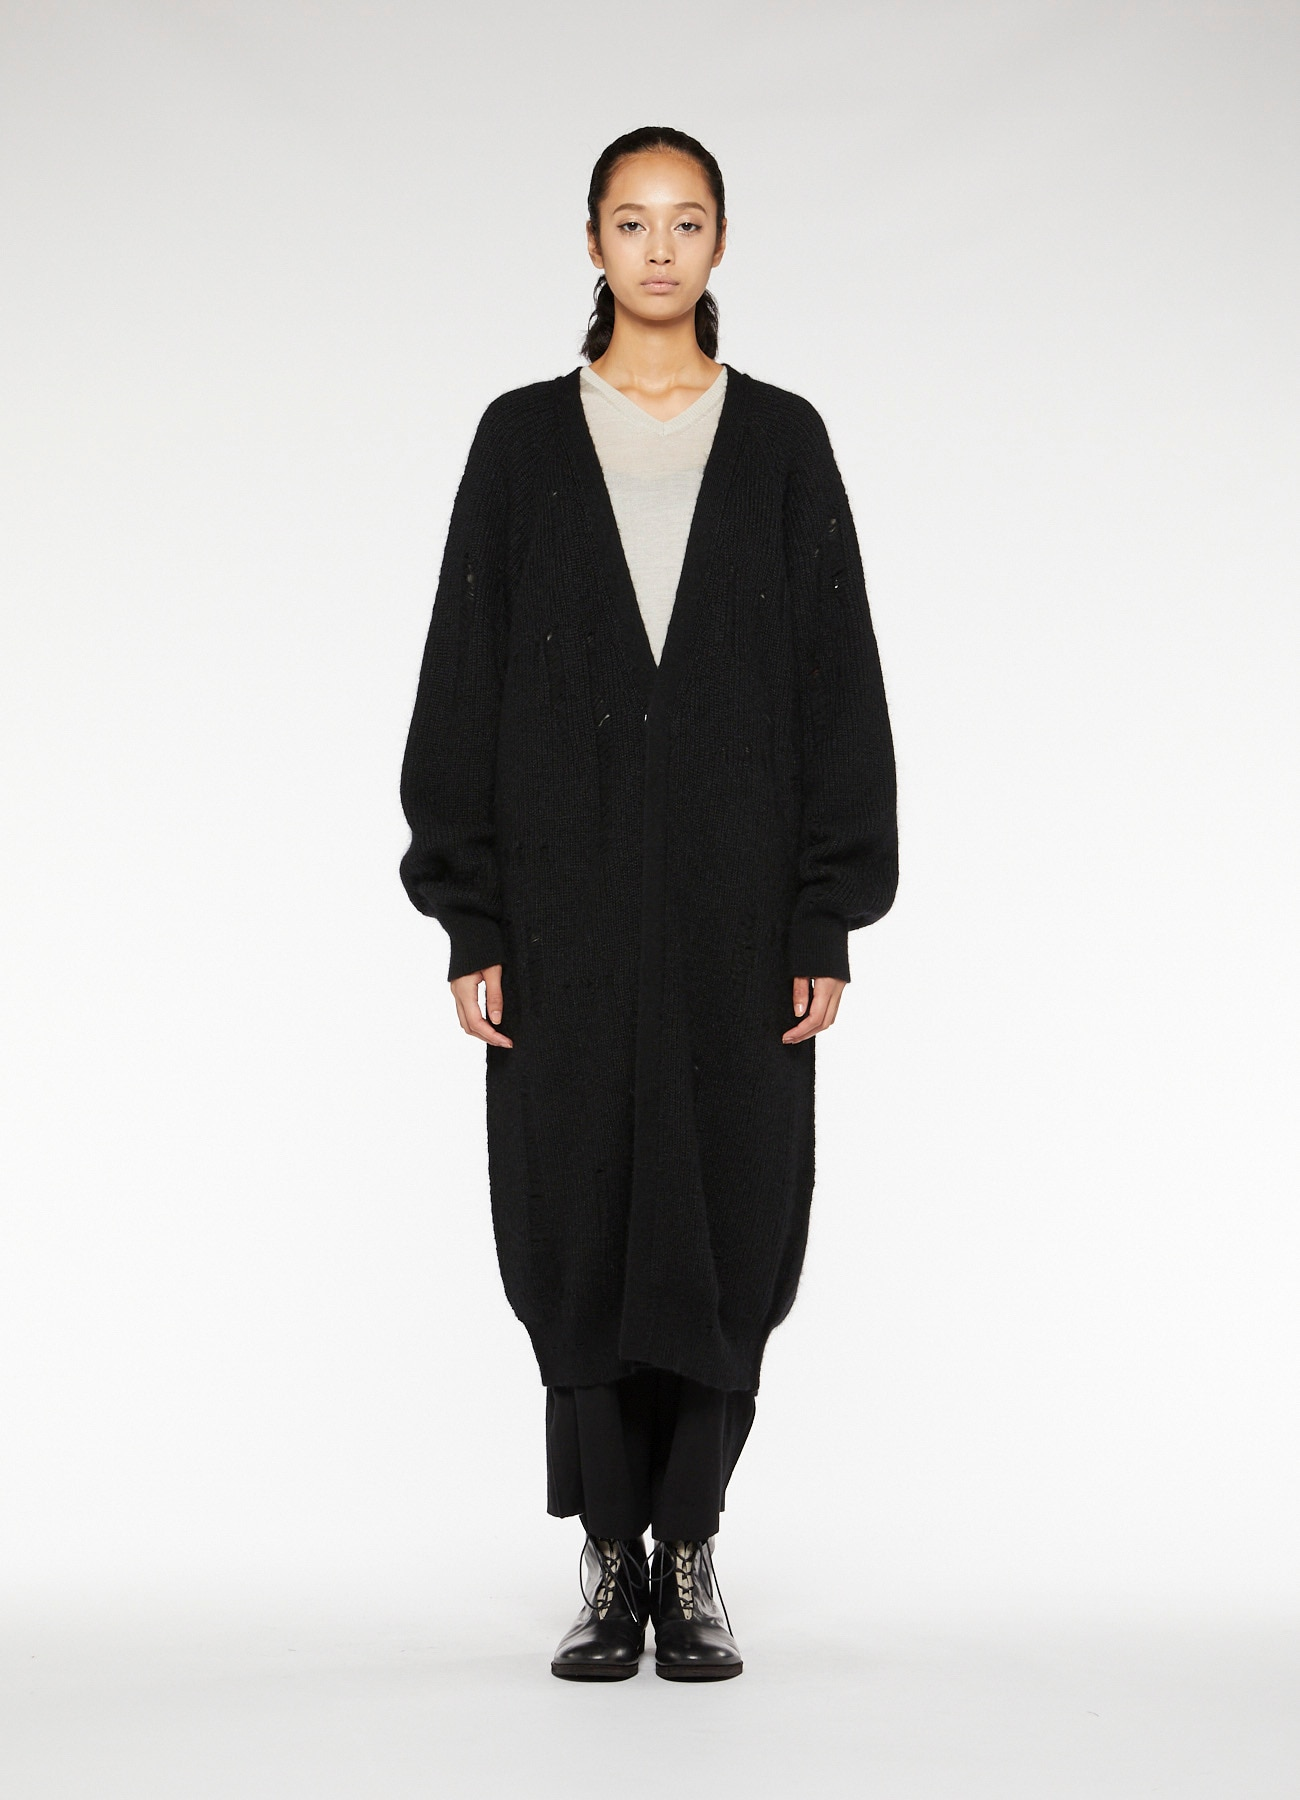 RISMATbyY's WOOL MOHAIR HOLE LONG CARDIGAN